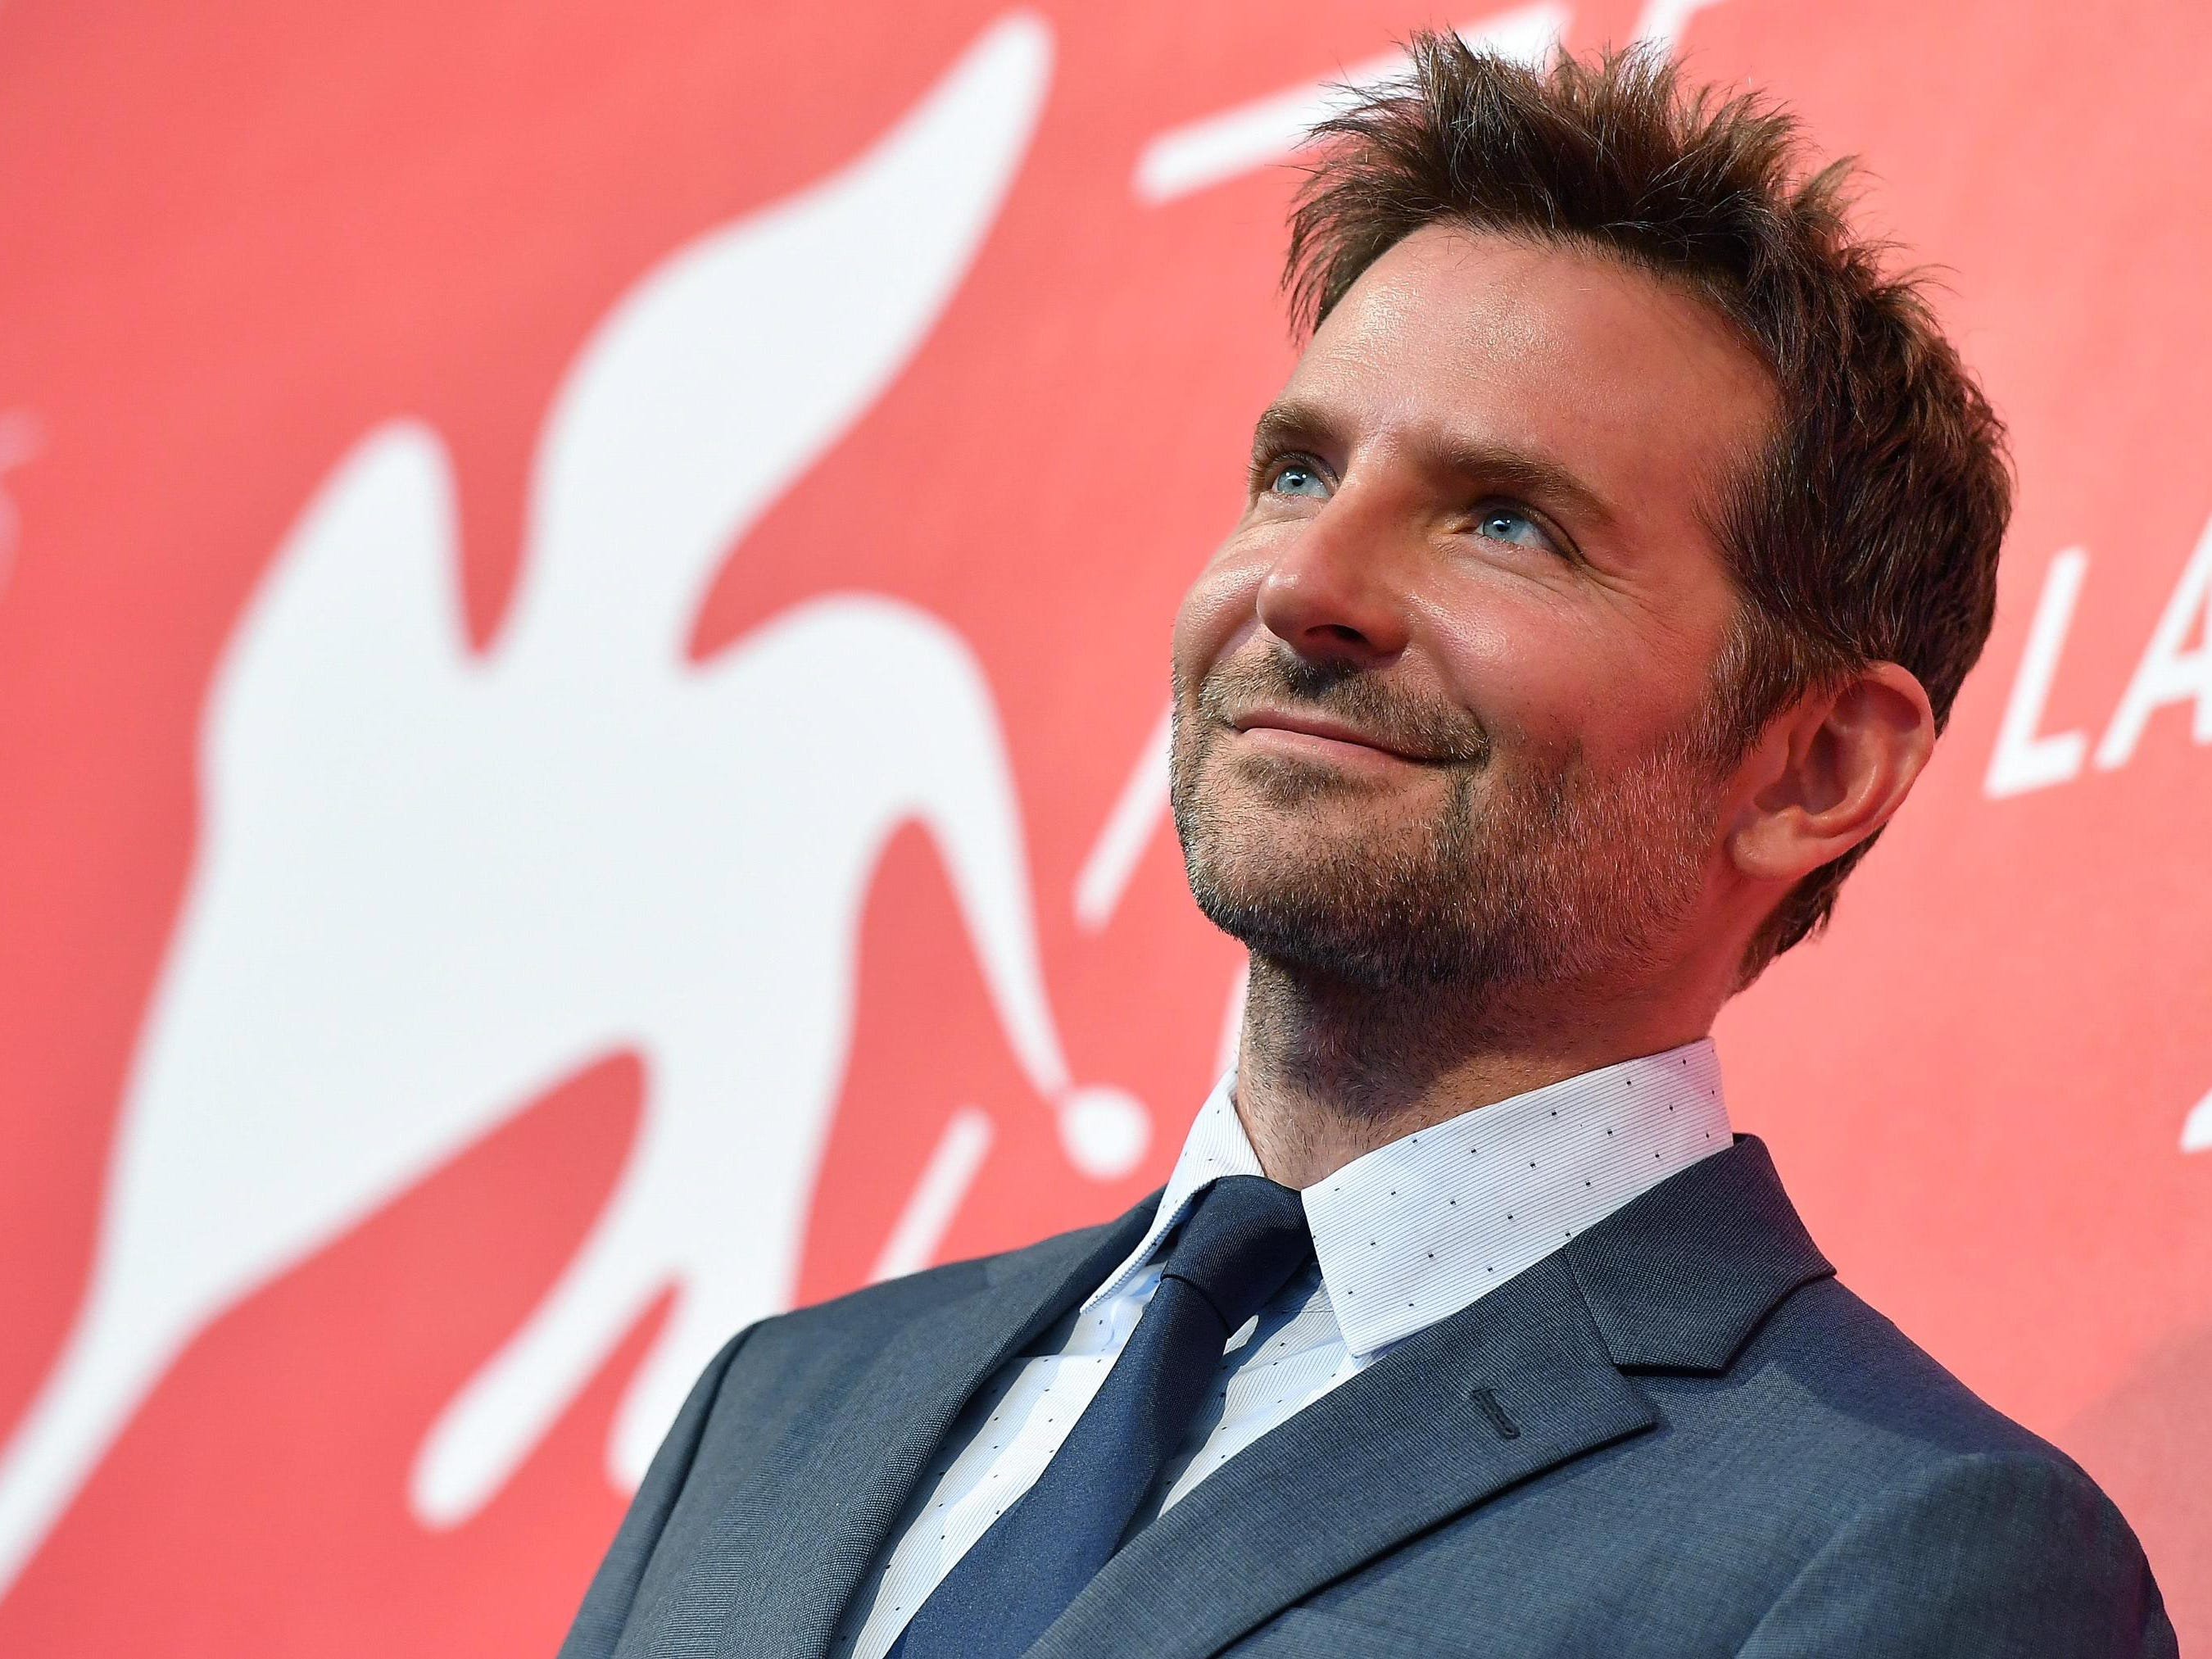 """Bradley Cooper, who stars in and directs """"A Star Is Born,"""" arrives for a photo call."""